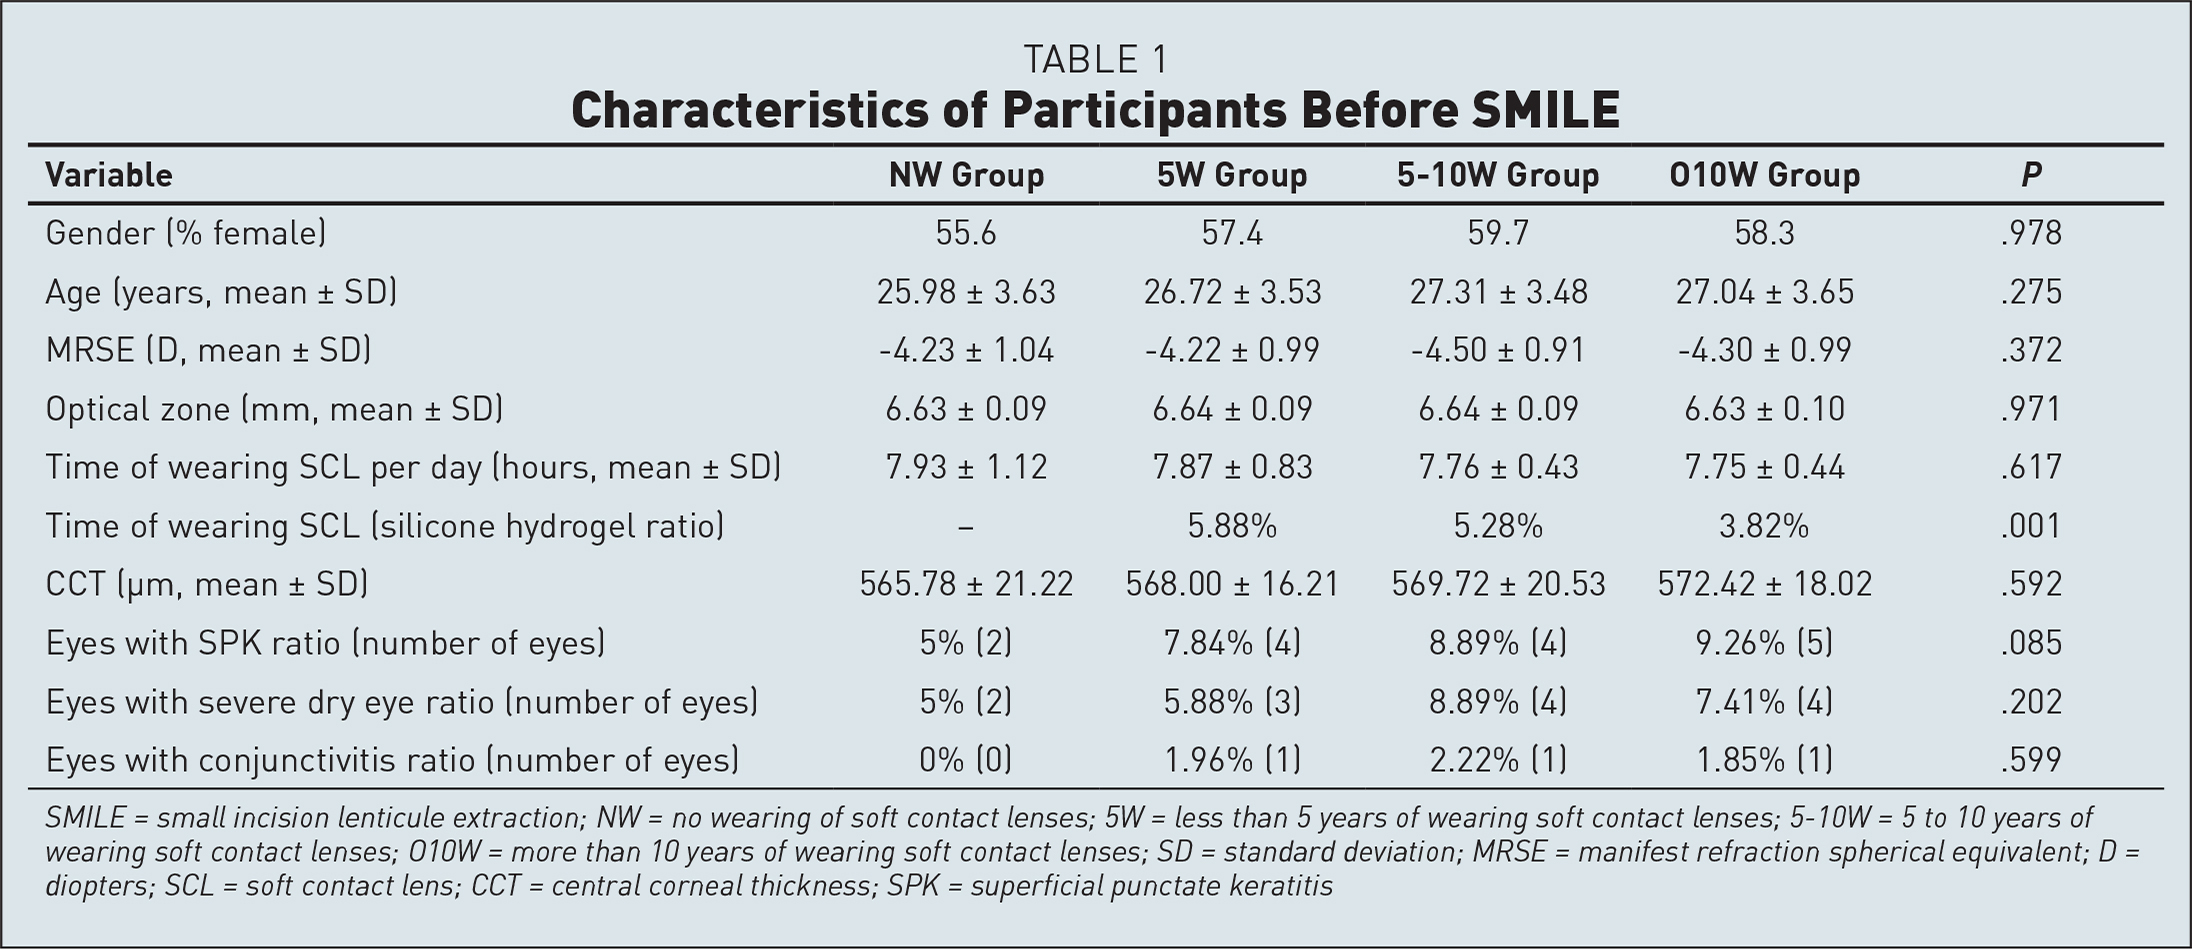 Characteristics of Participants Before SMILE